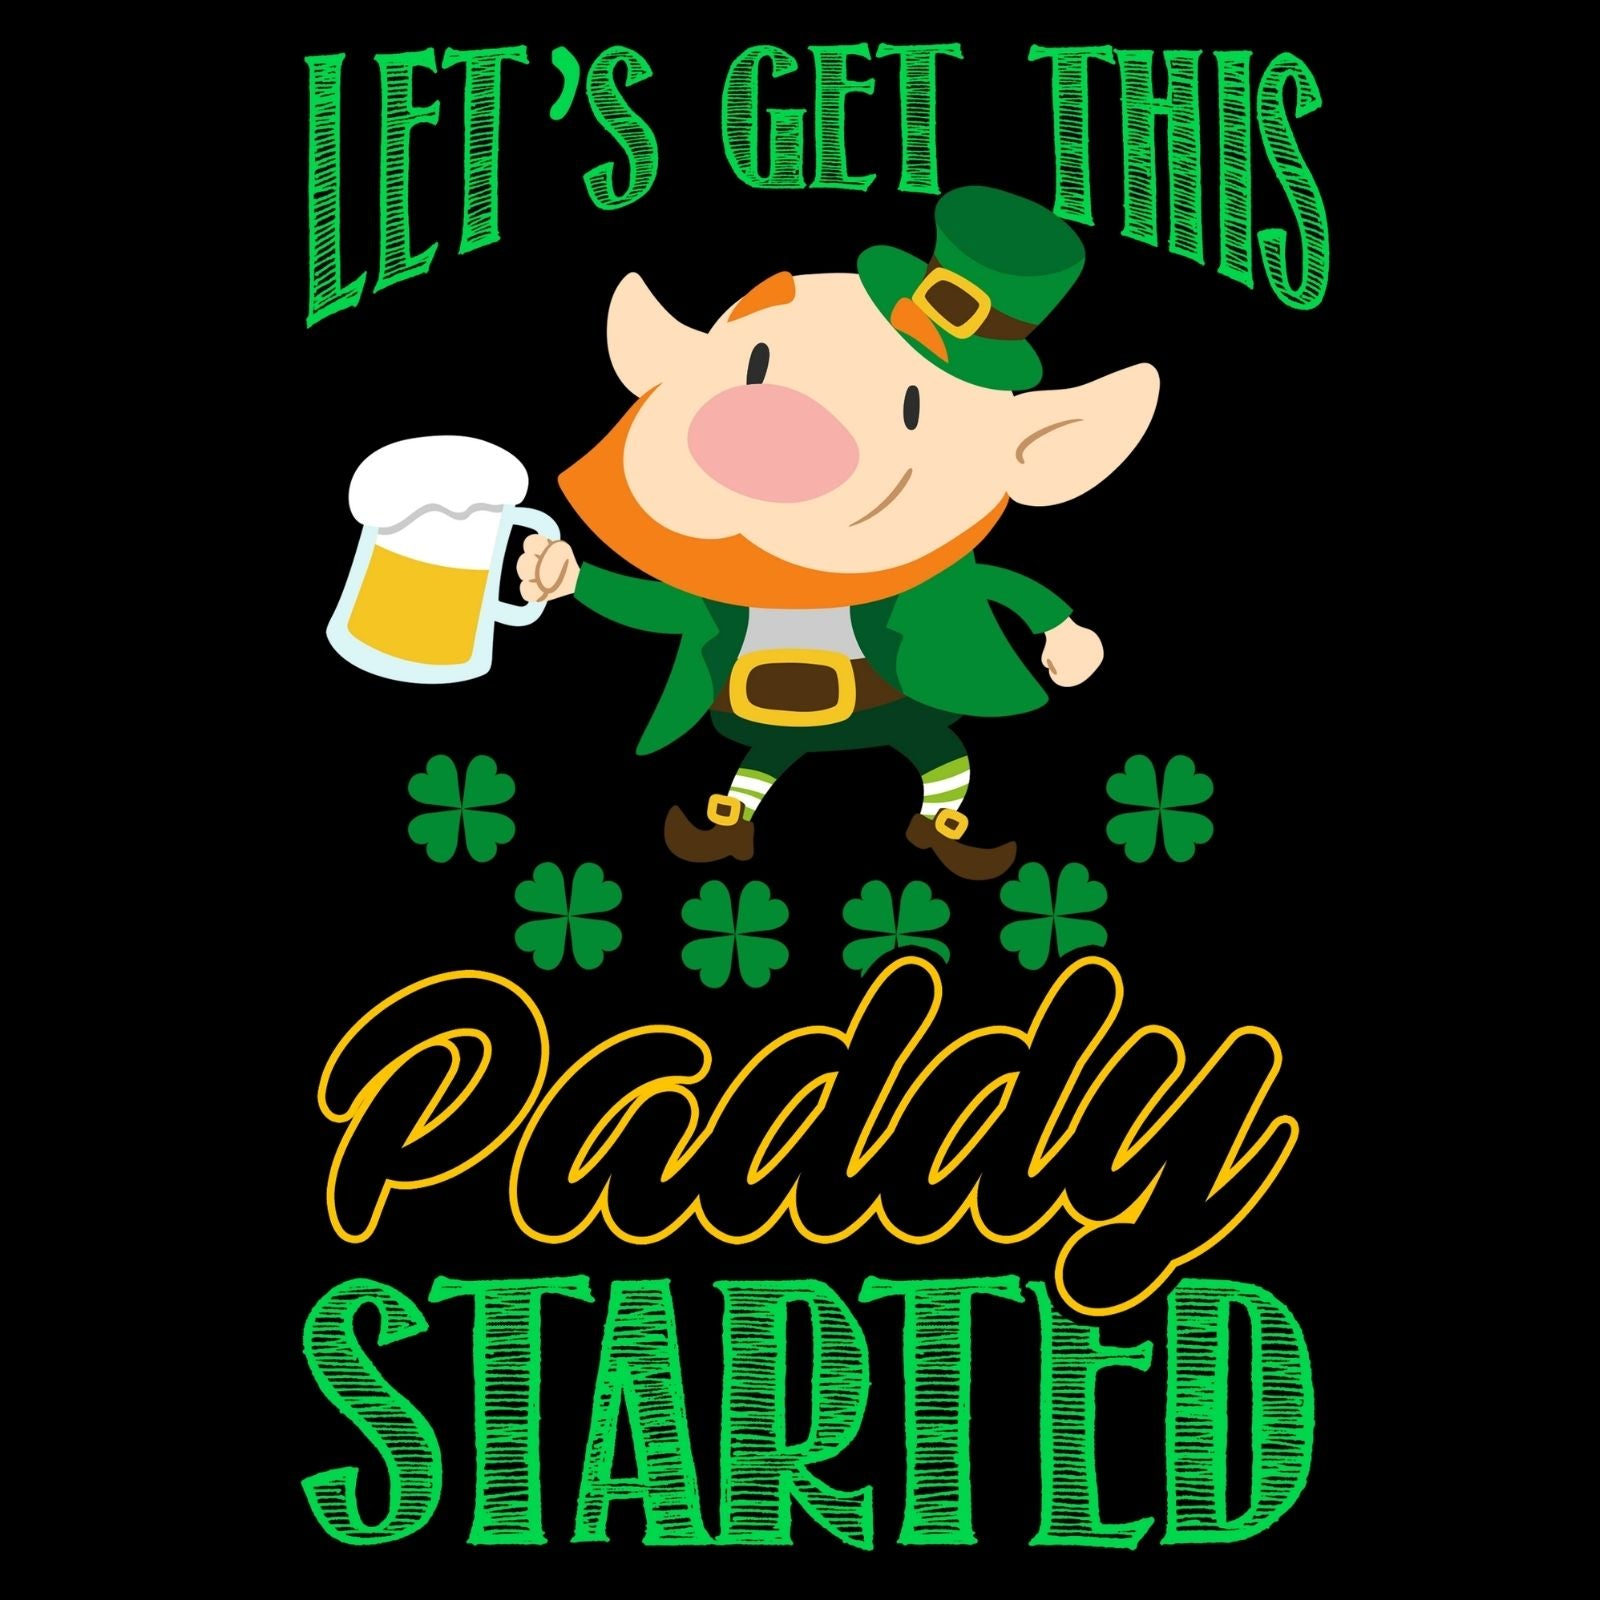 Let's Get This Paddy Started - Bastard Graphics